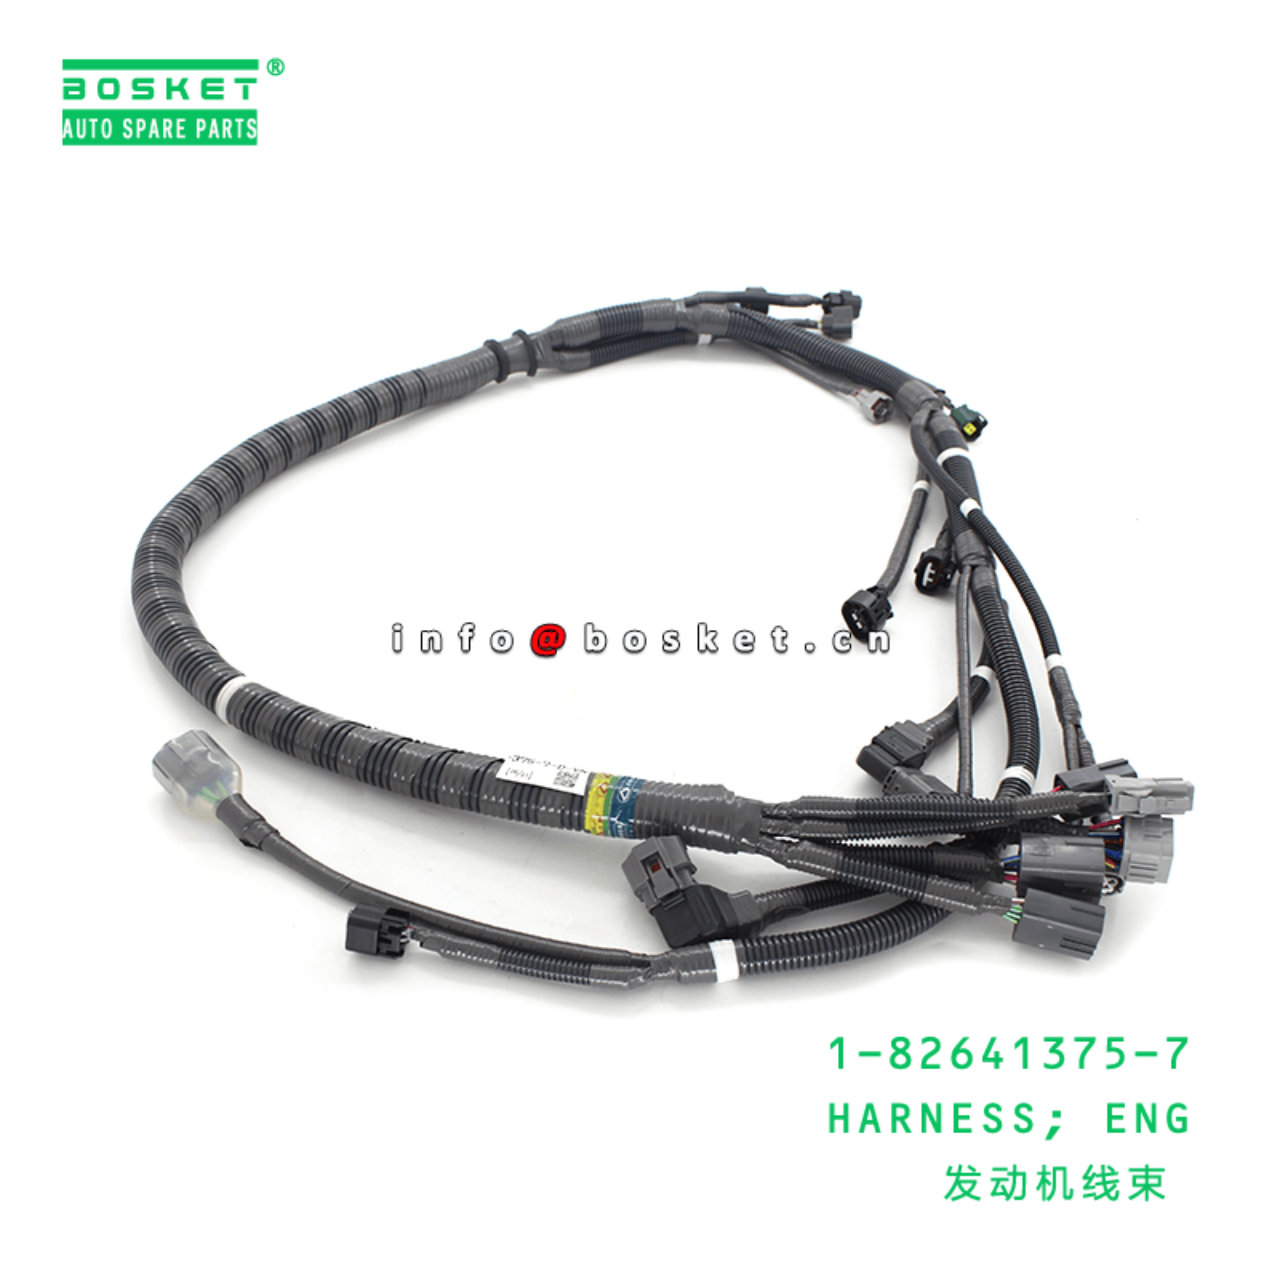 1-82641375-7 Engine Harness 1826413757 Suitable for ISUZU XE 6HK1